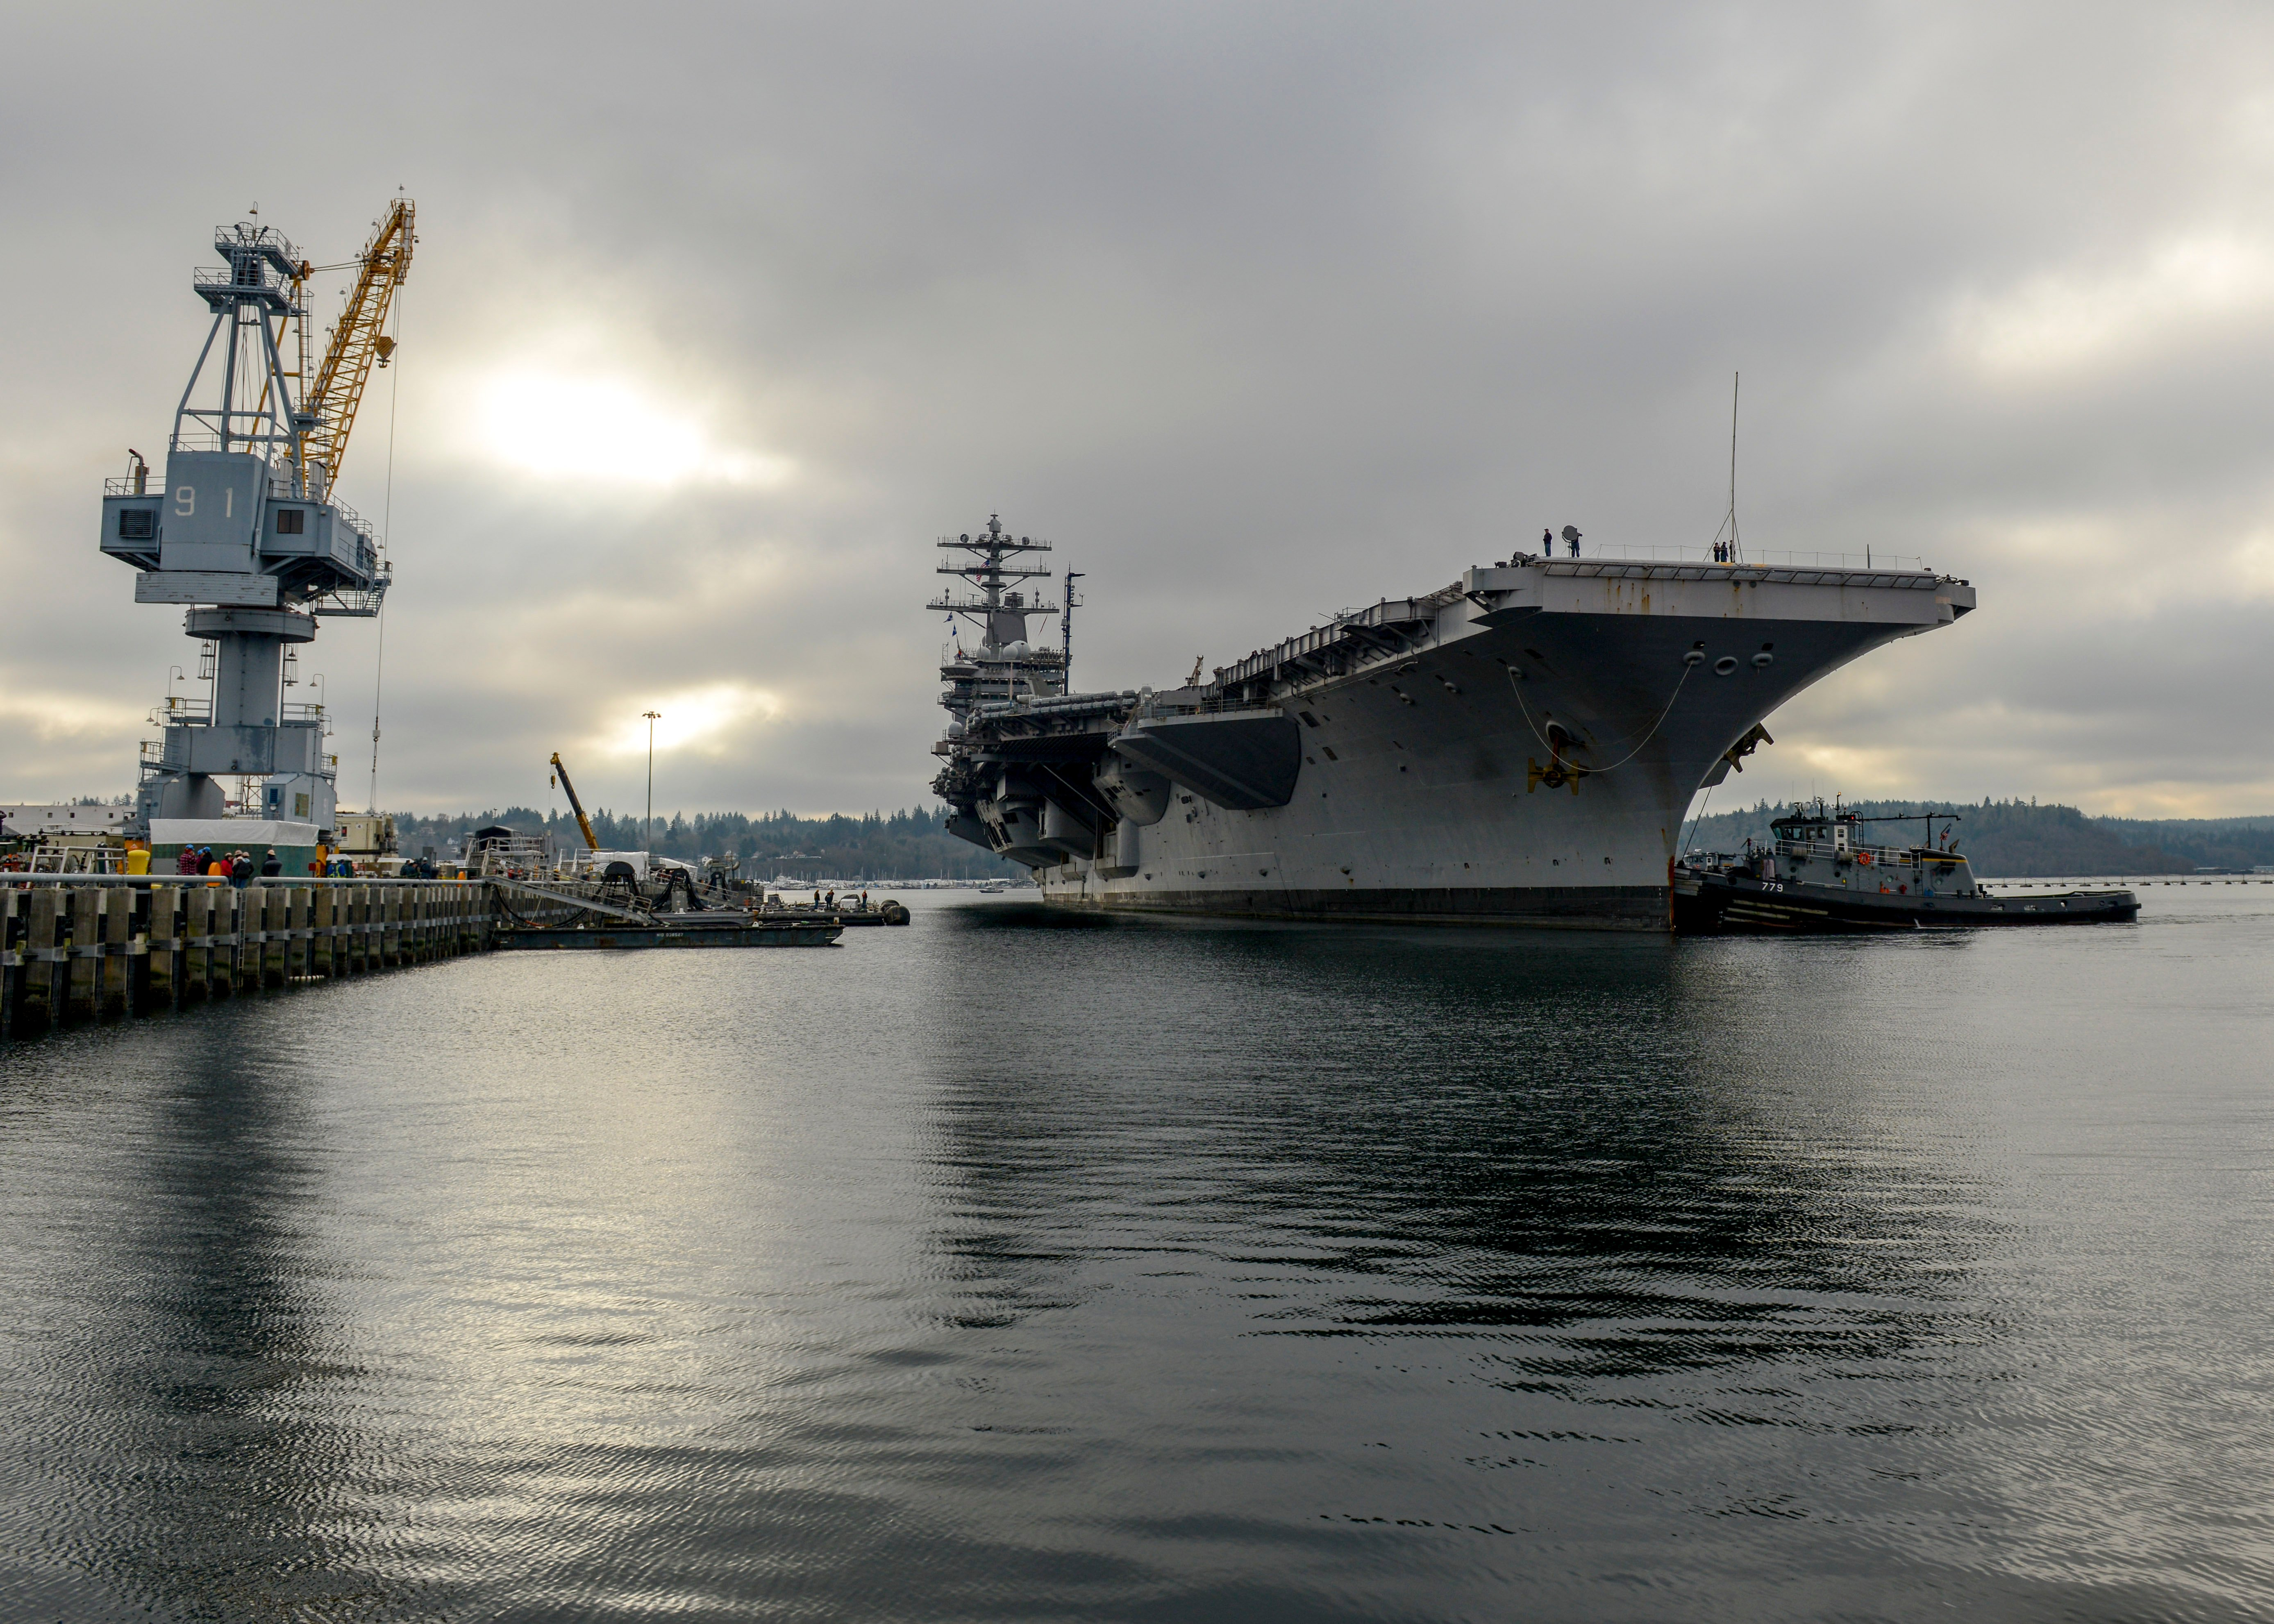 The Nimitz-class aircraft carrier USS Nimitz (CVN 68) arrives pierside at Naval Base Kitsap Bremerton prior to a planned incremental availability at Puget Sound Naval Shipyard and Intermediate Maintenance Facility. US Navy photo.